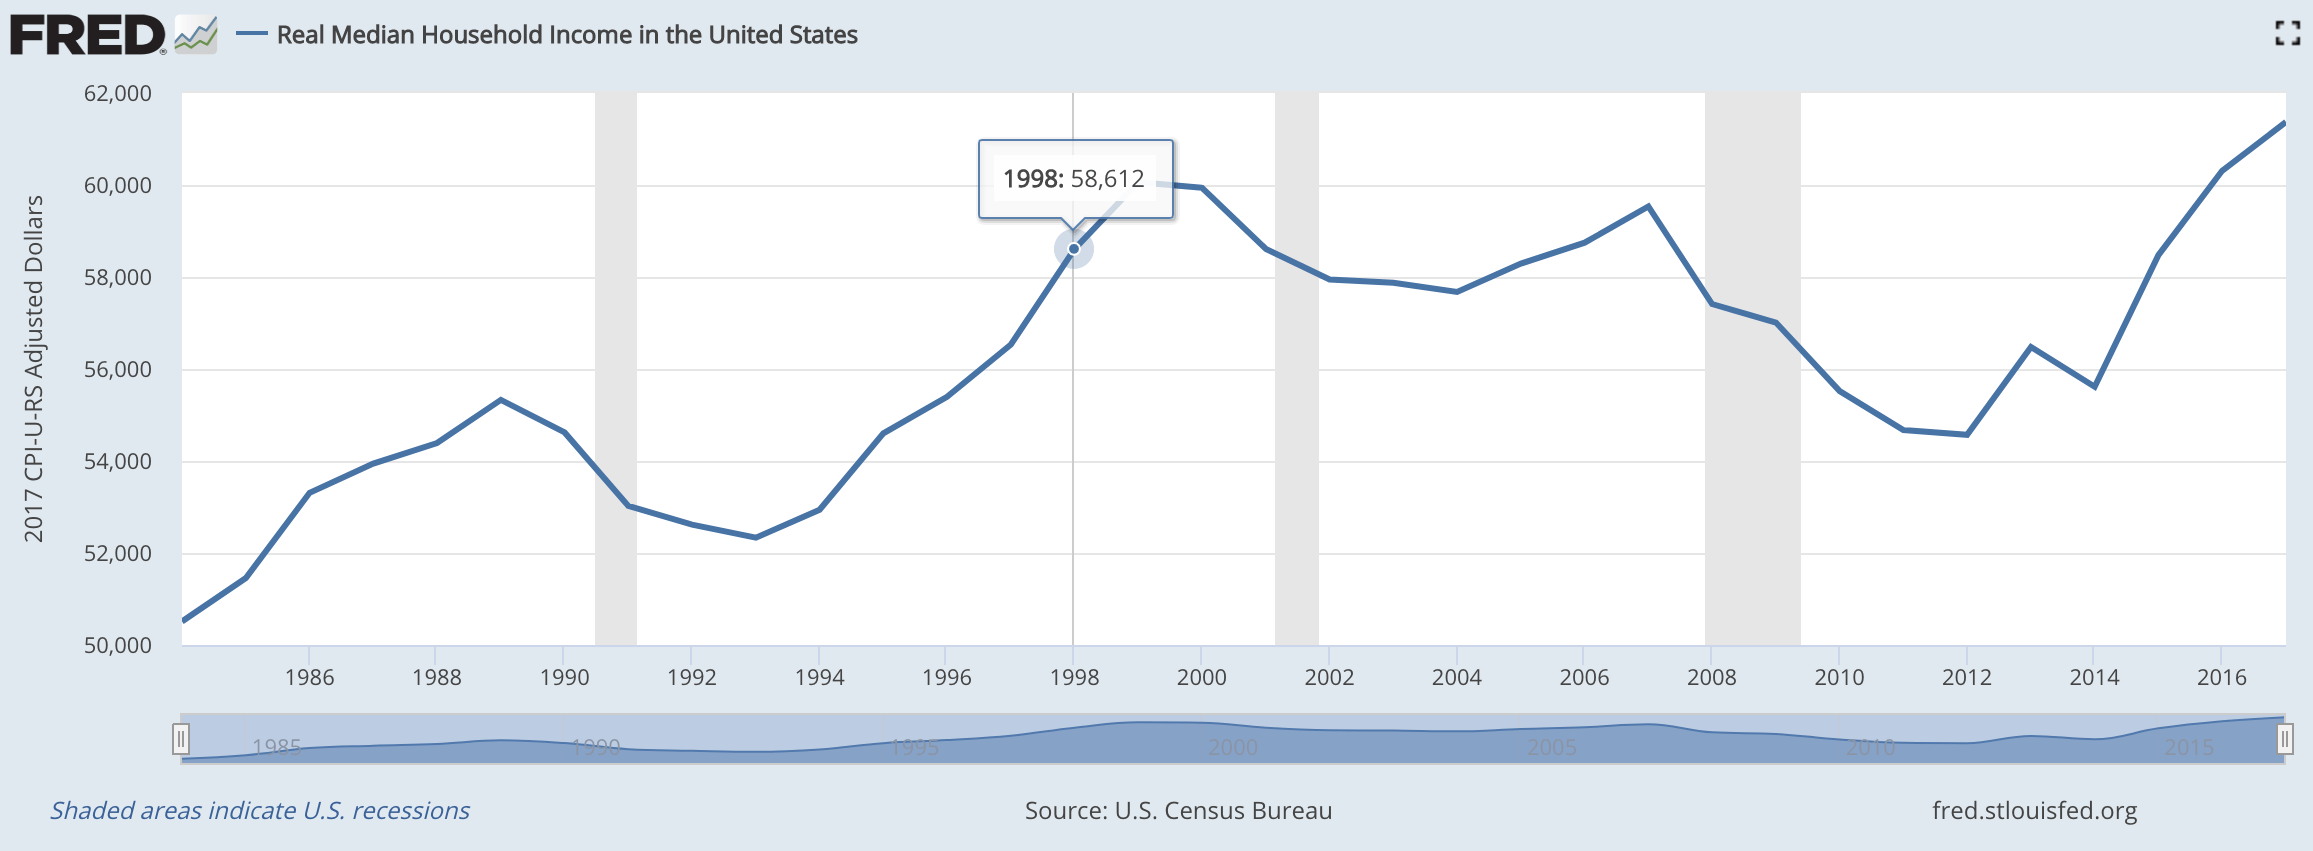 Real Median Household Income In The US